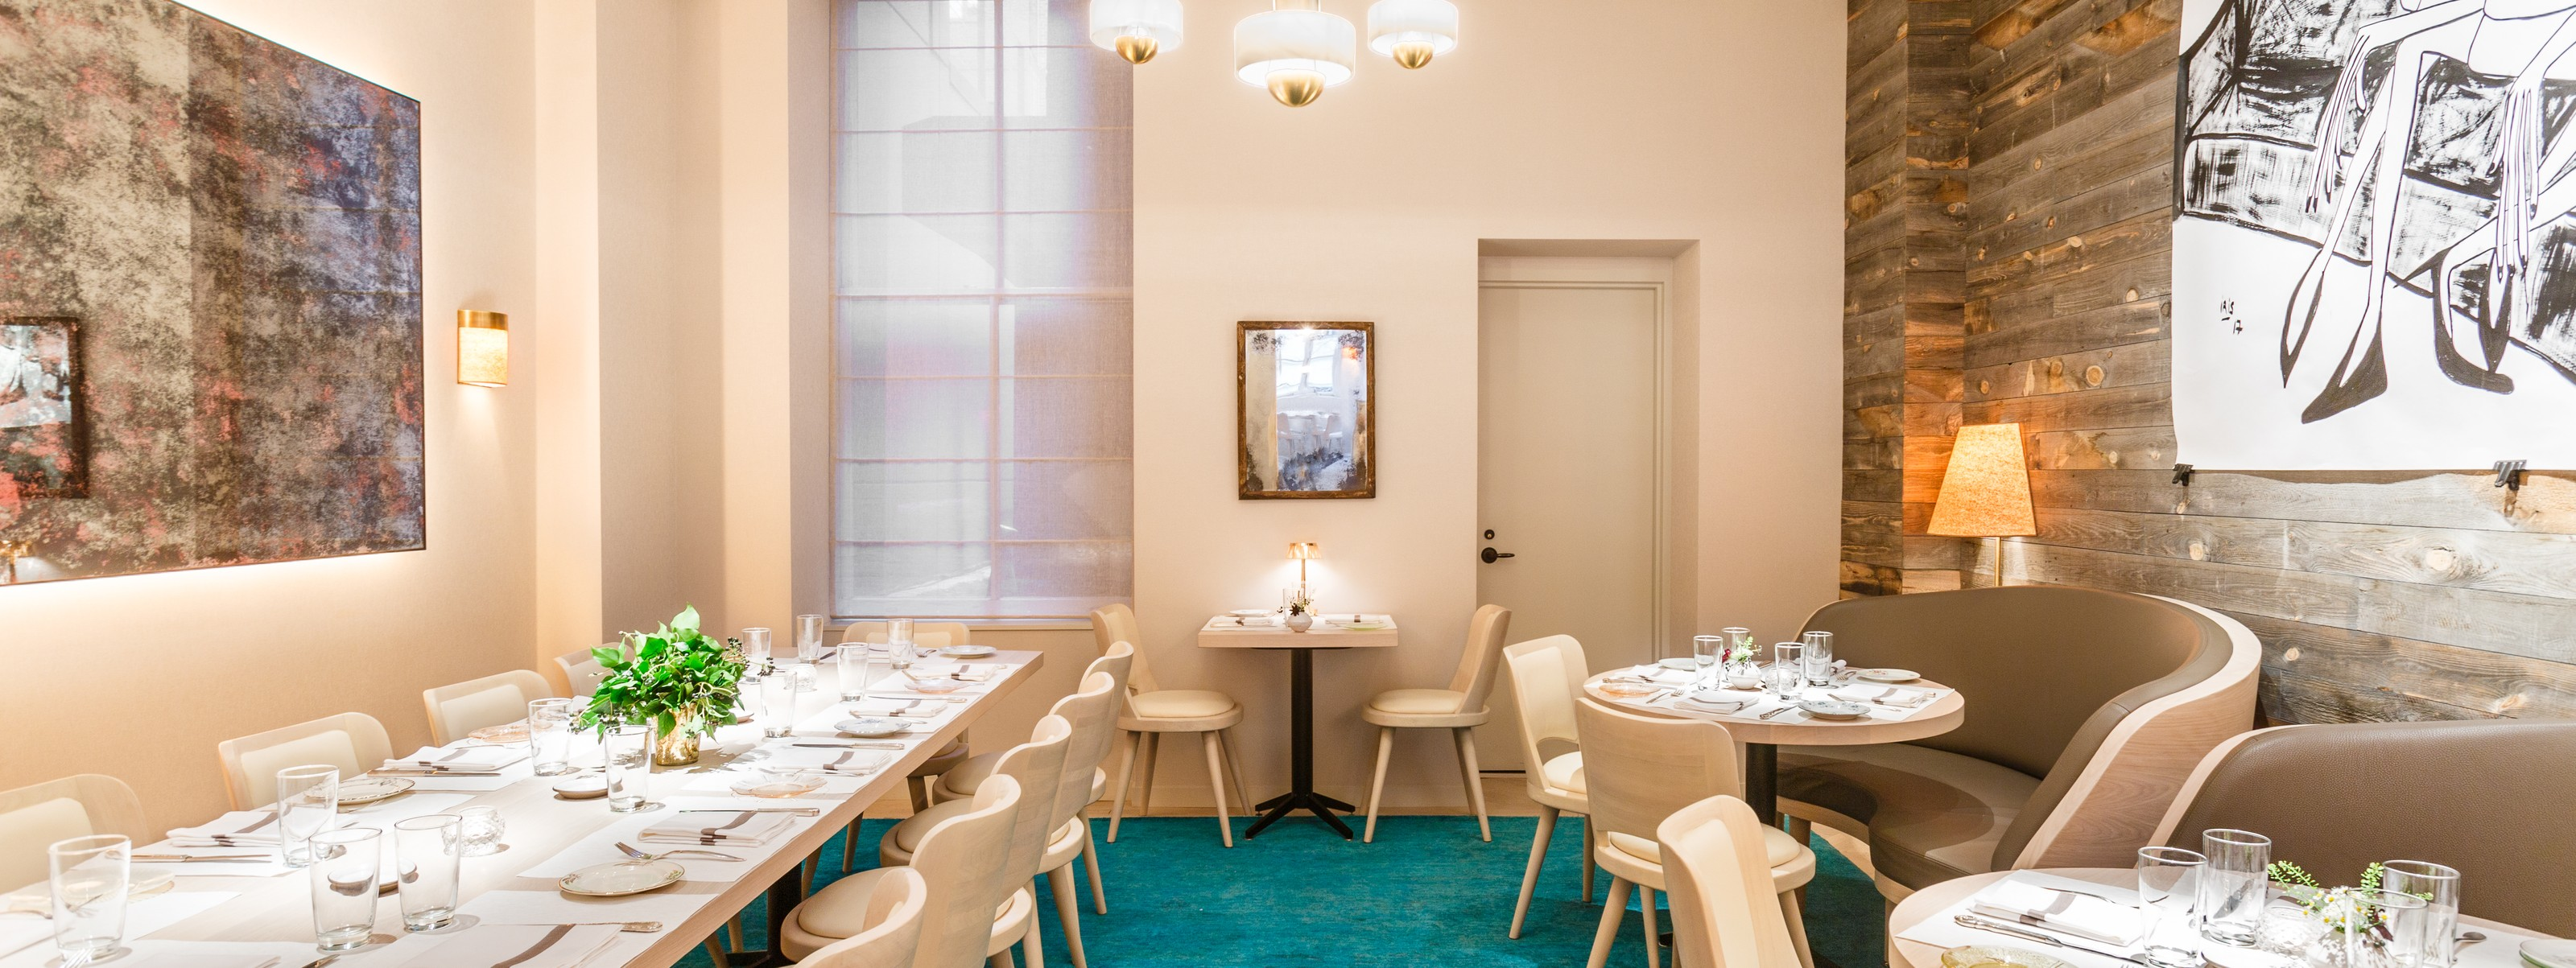 The Uptown Hit List: The Best New Restaurants Above 59th Street - New York - The Infatuation